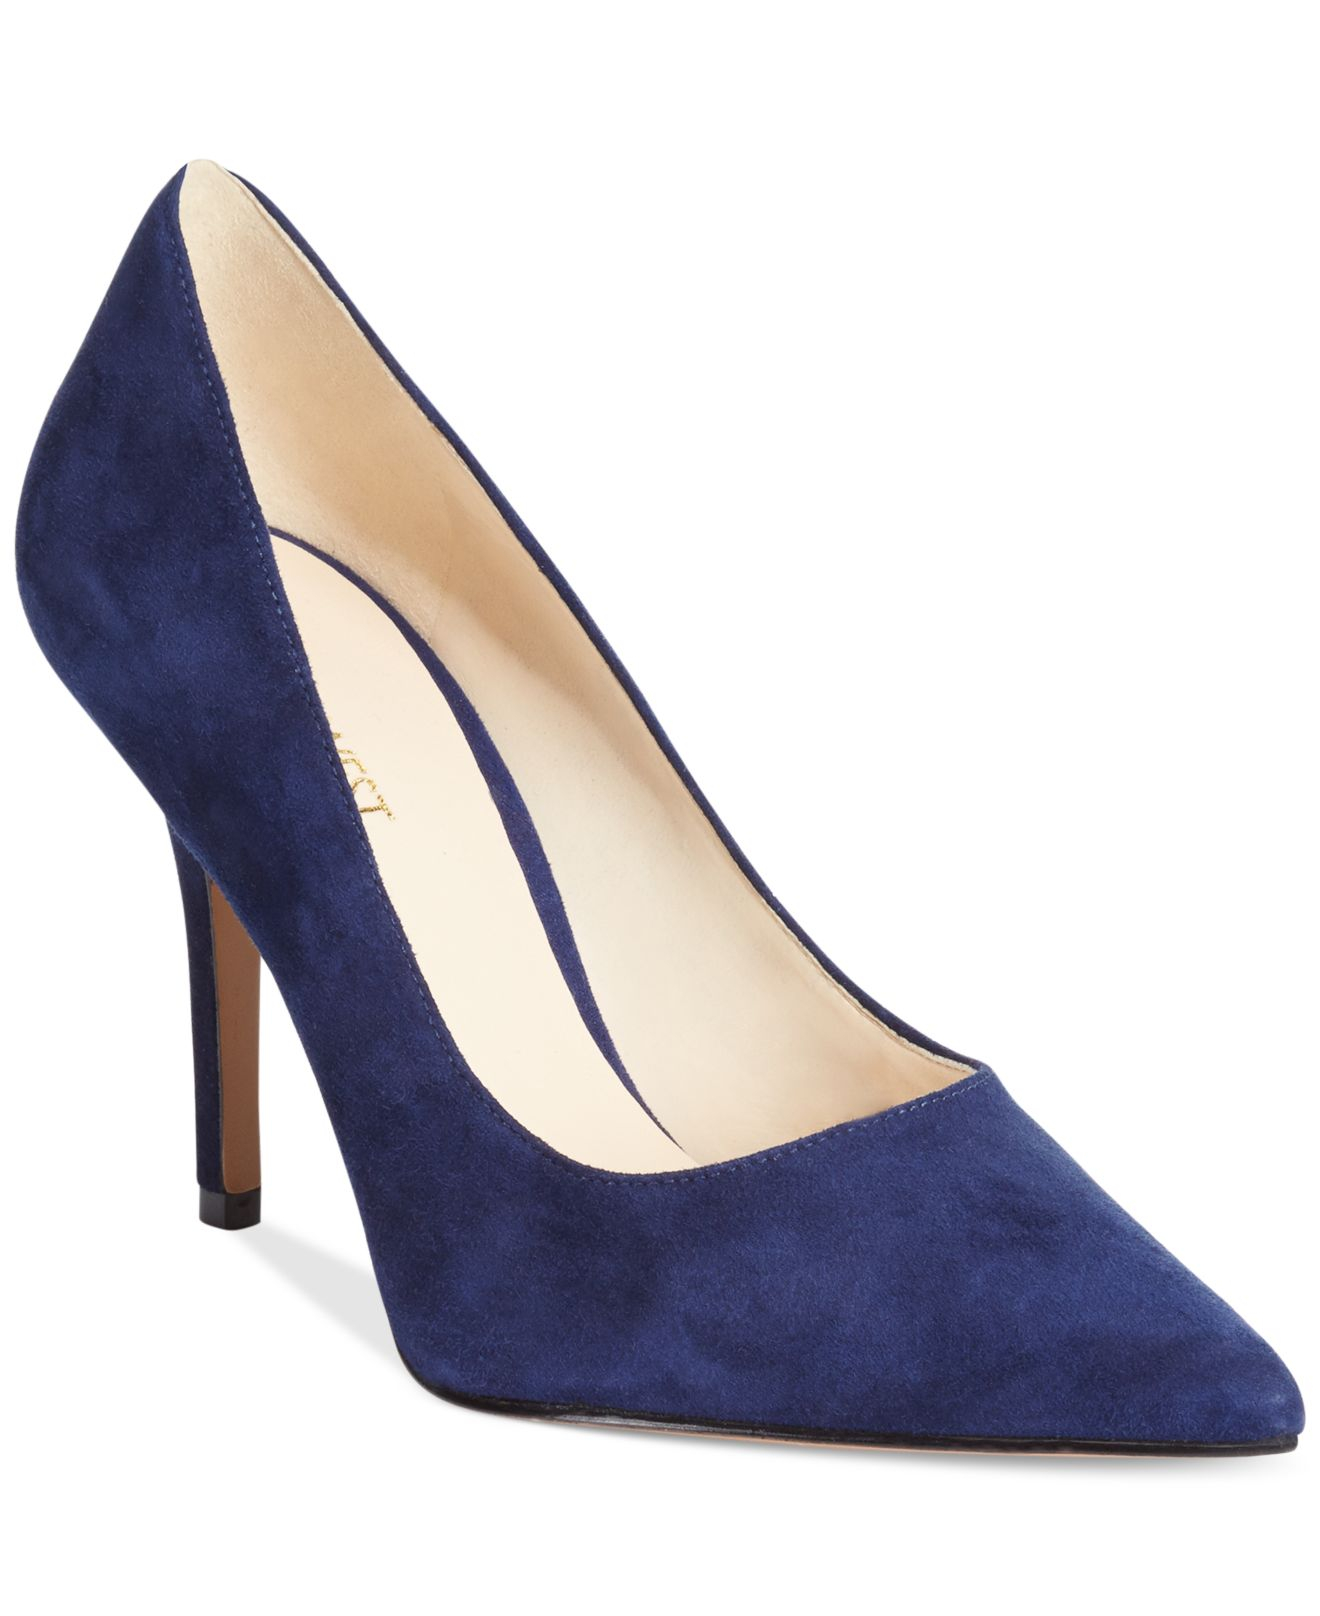 c7318b07bad Lyst - Nine West Jackpot Pumps in Blue